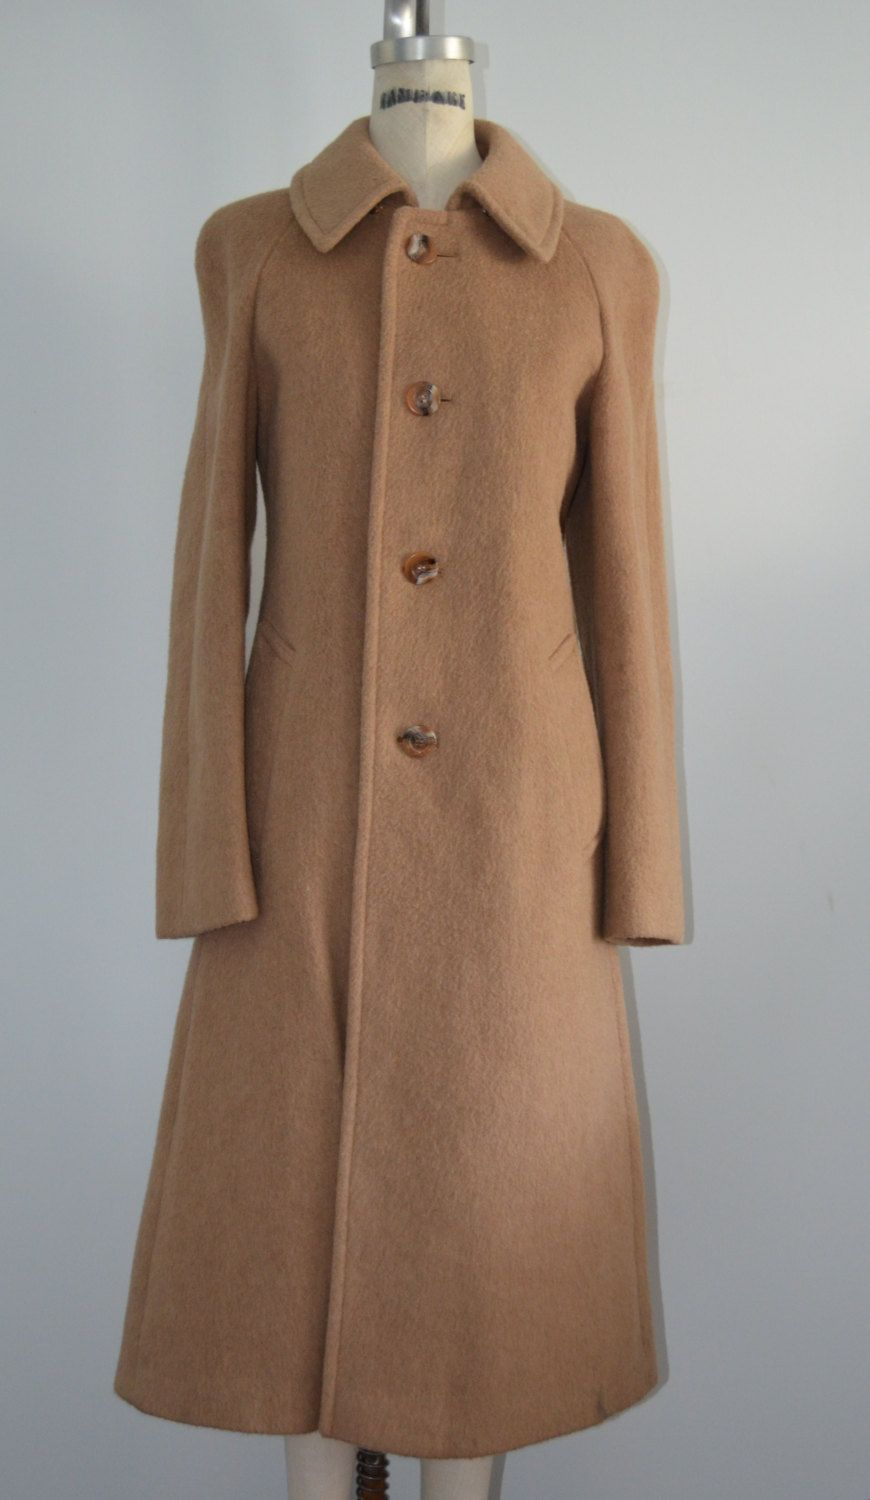 4191871cc74c Vintage Mad Men Teller of Austria Wool Caramel Long Coat Jacket ...